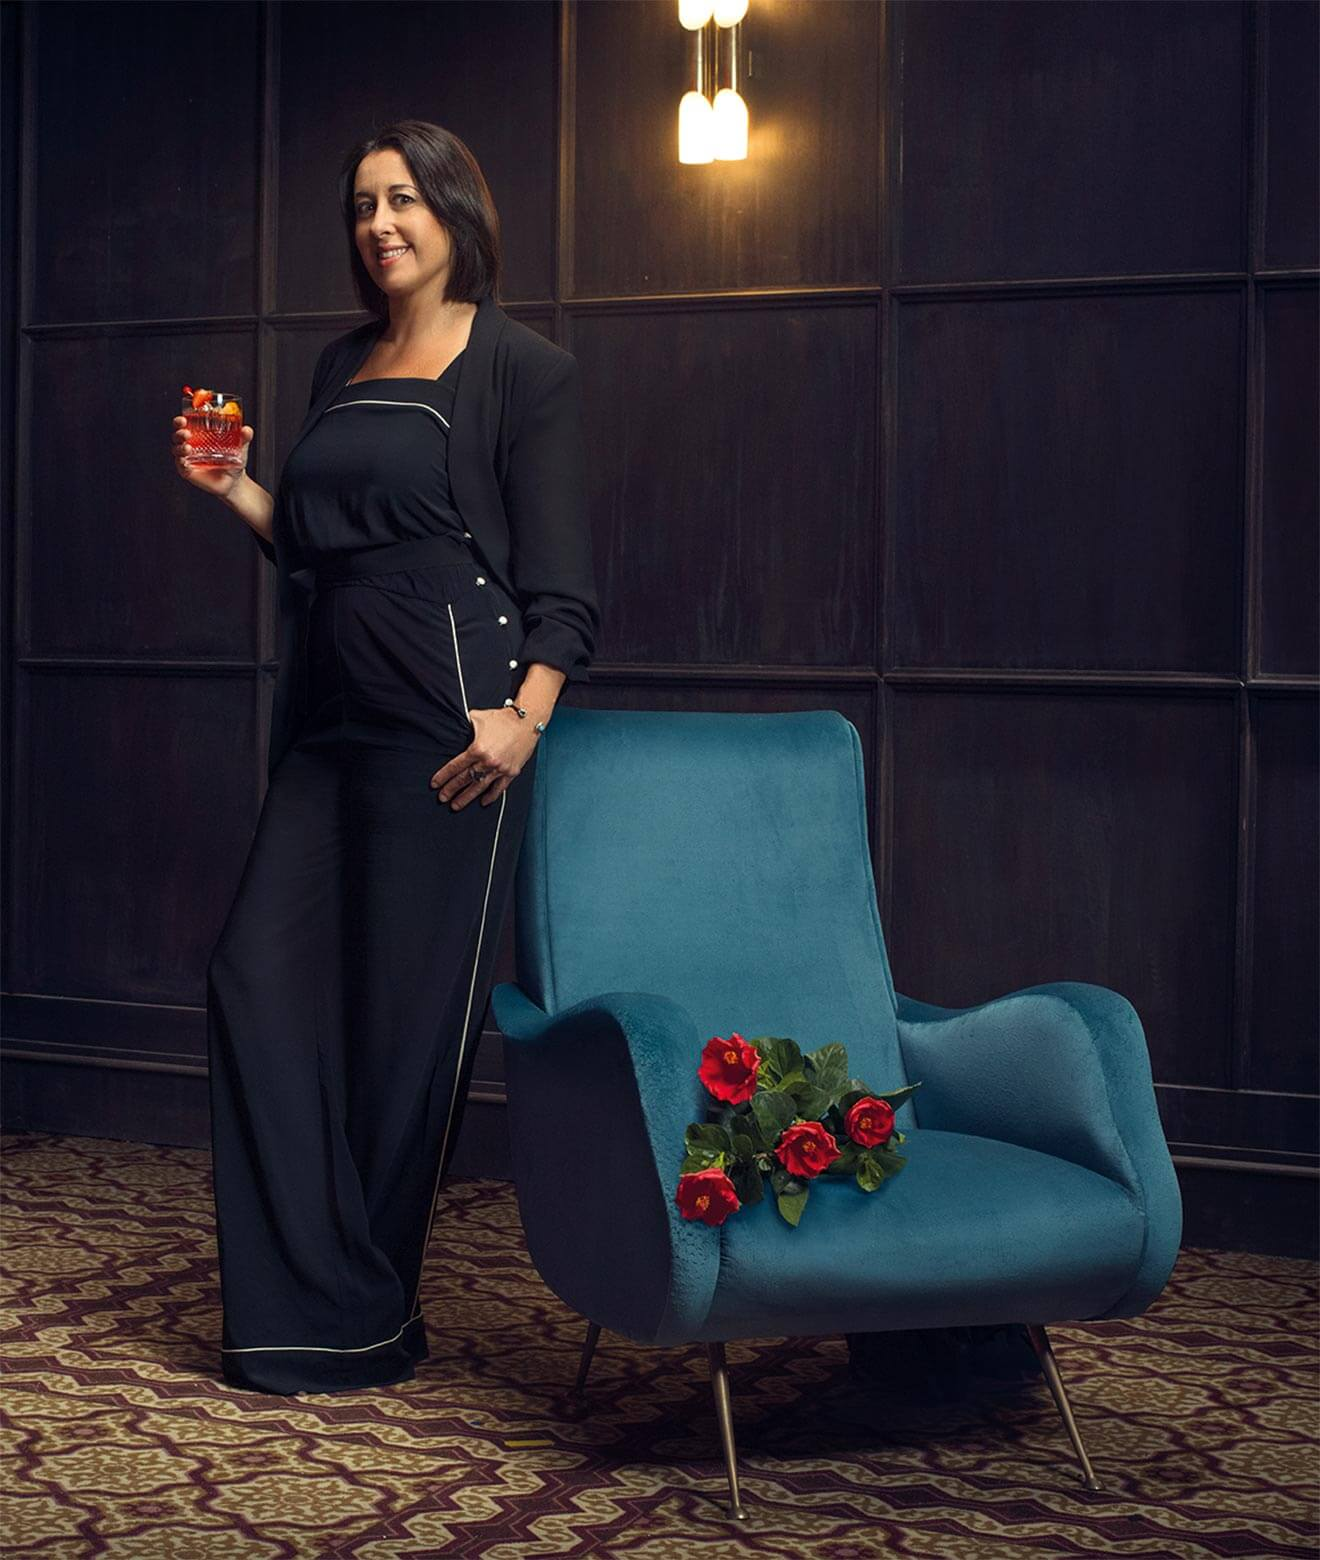 Mixologist Julie Reiner and her cocktail The Kula Negroni